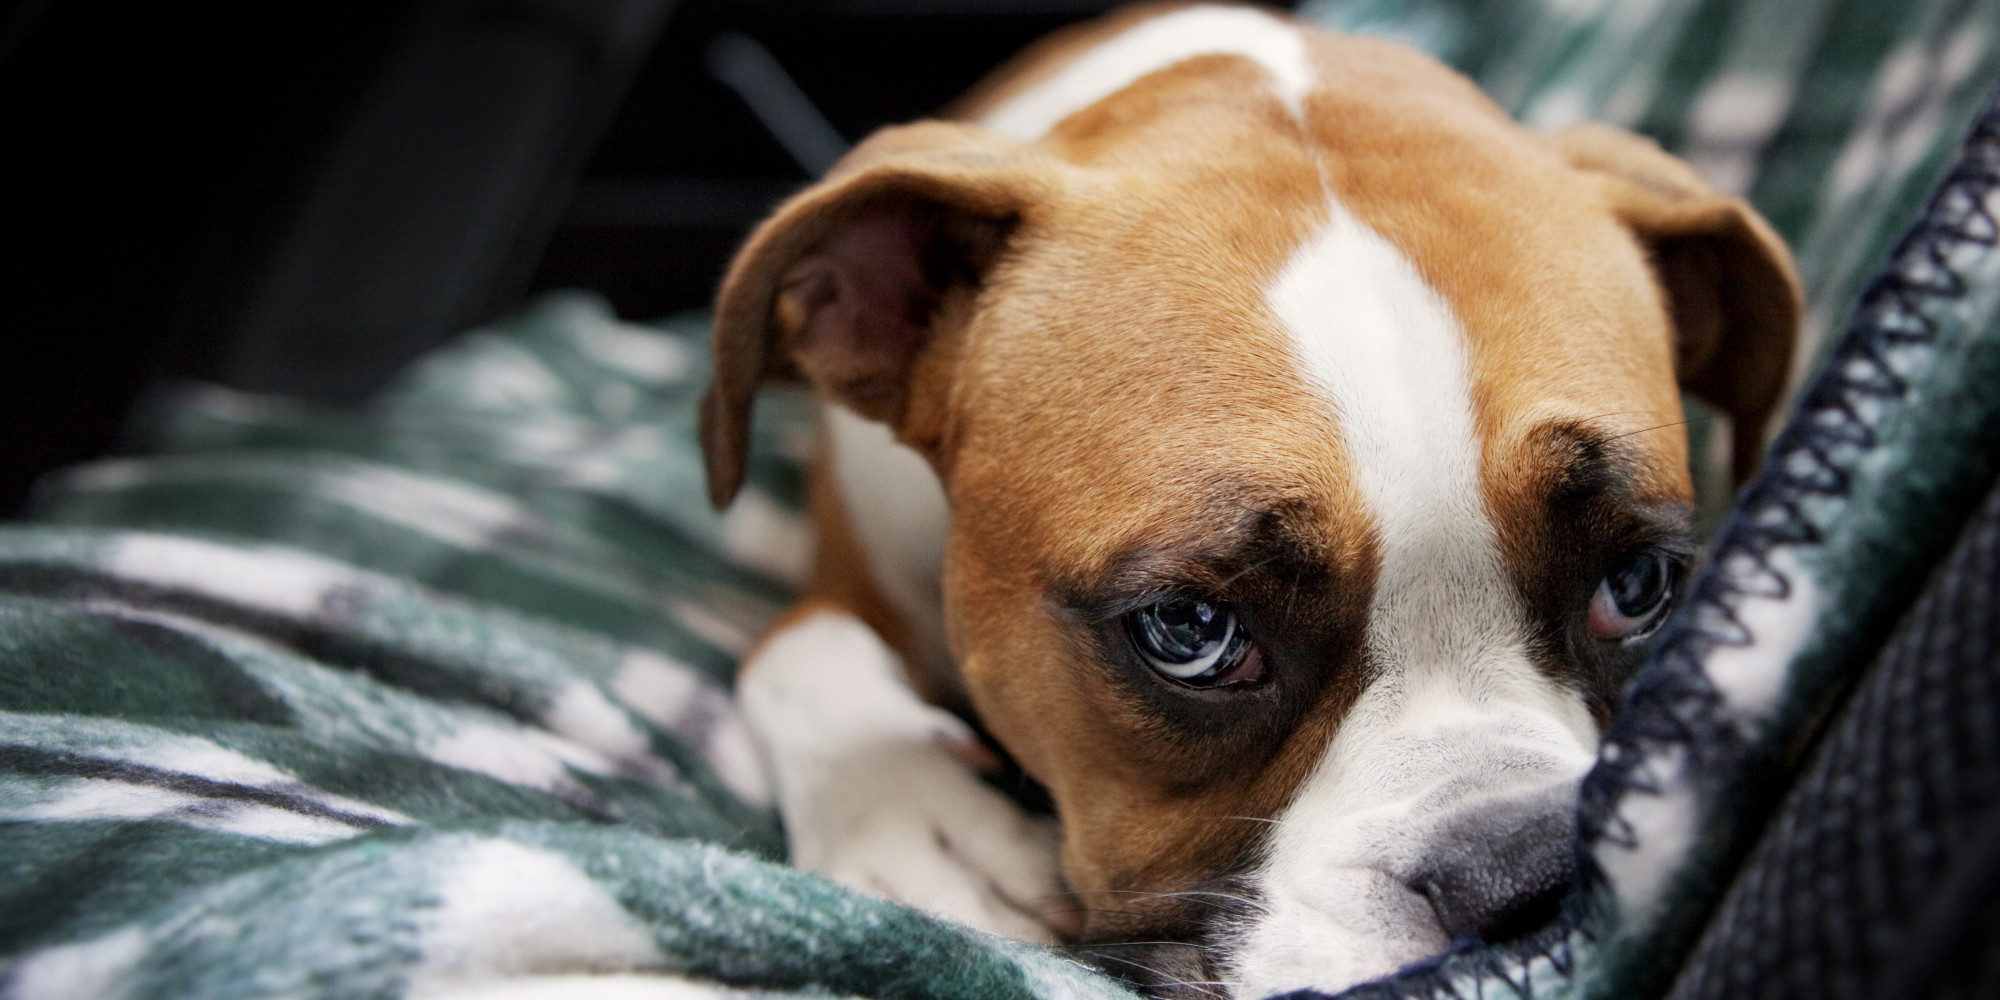 Cute Beagle Puppy Wallpaper Who Gets The Pets In A Divorce What You Need To Consider